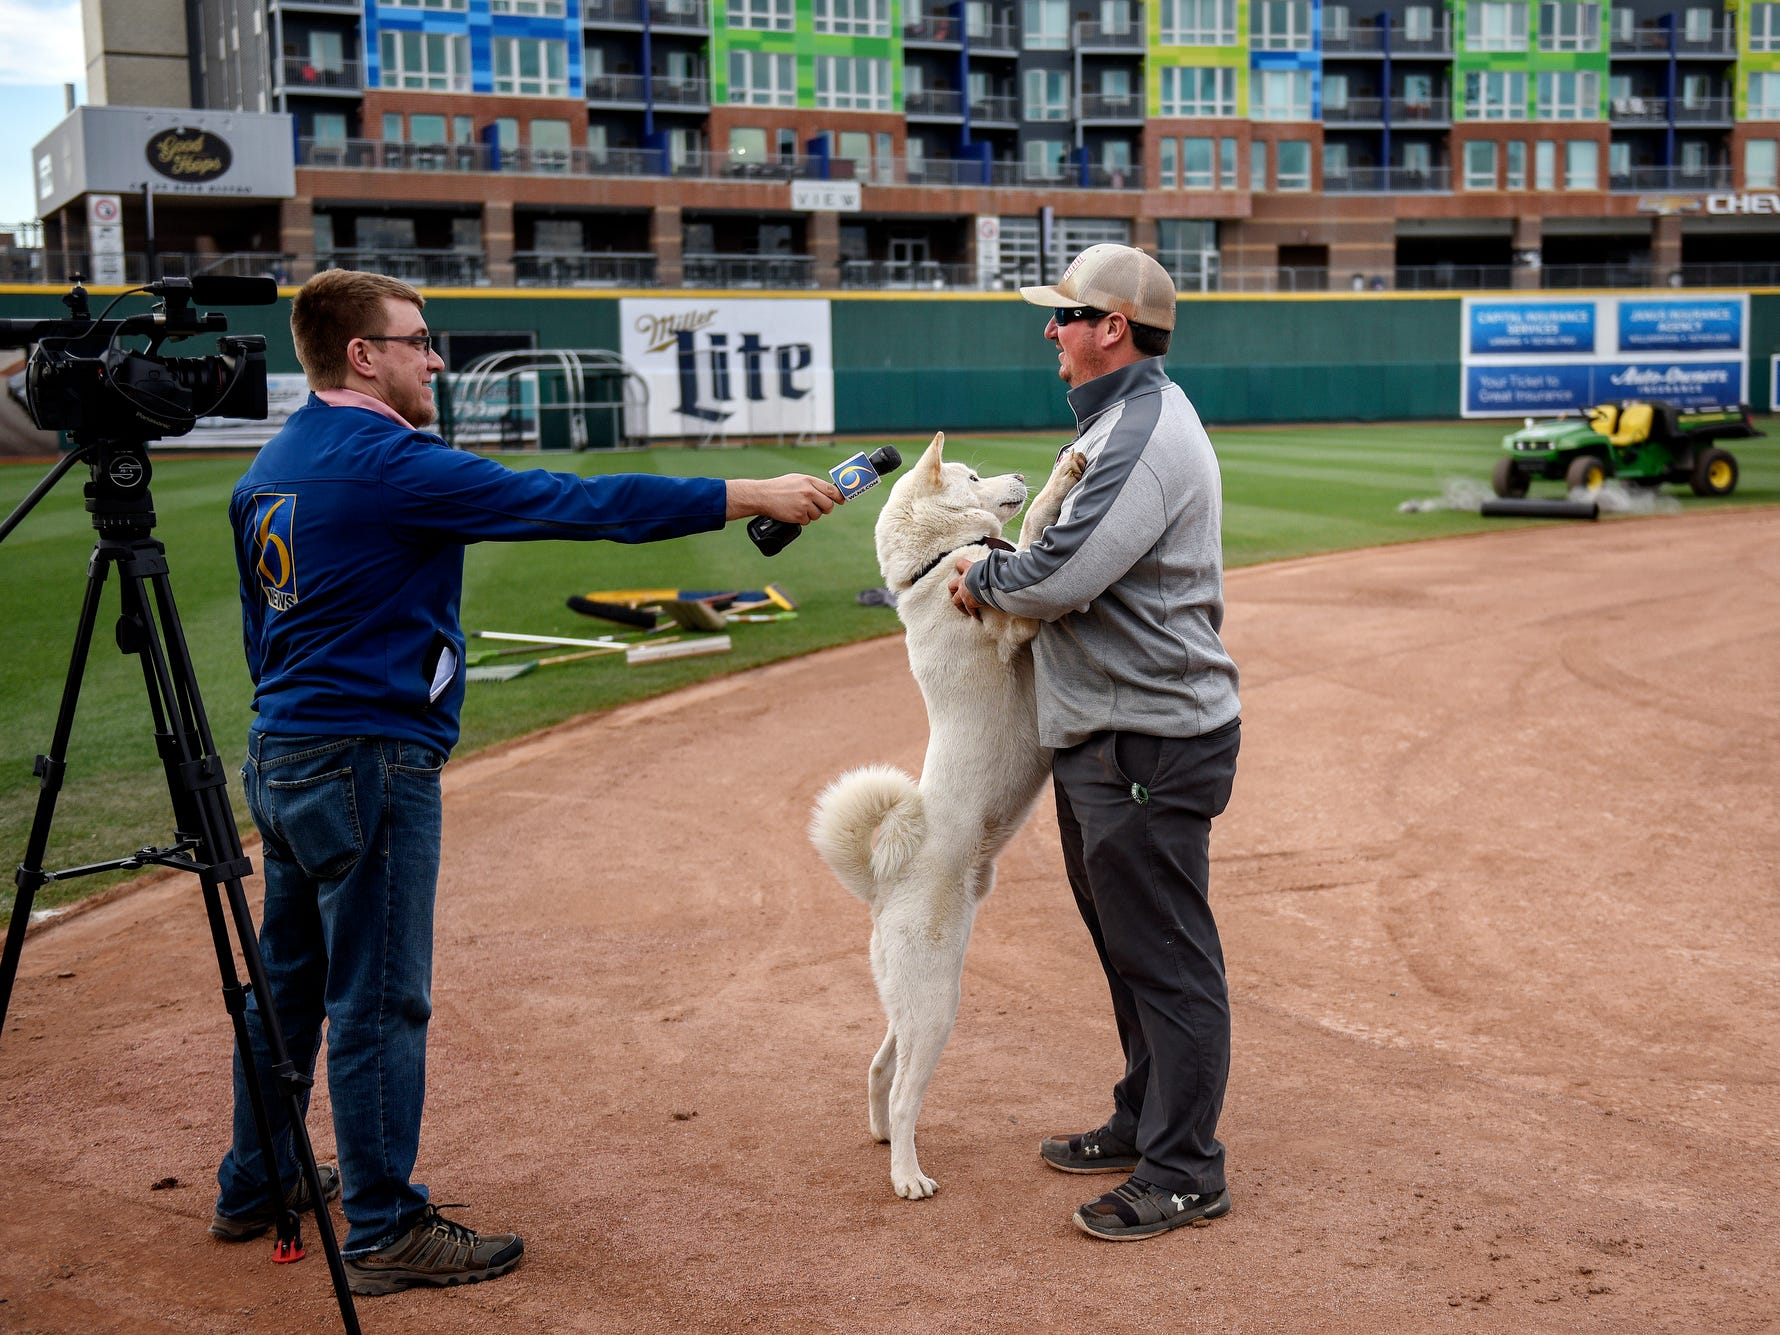 Lugnuts Head Groundskeeper Zach Severns get an impromptu visit from his dog Chief while Severns is interviewed by a television reporter as a crew works to turnover the baseball field for a Lansing Ignite soccer match on Wednesday, April 24, 2019, at Cooley Law School Stadium in Lansing.